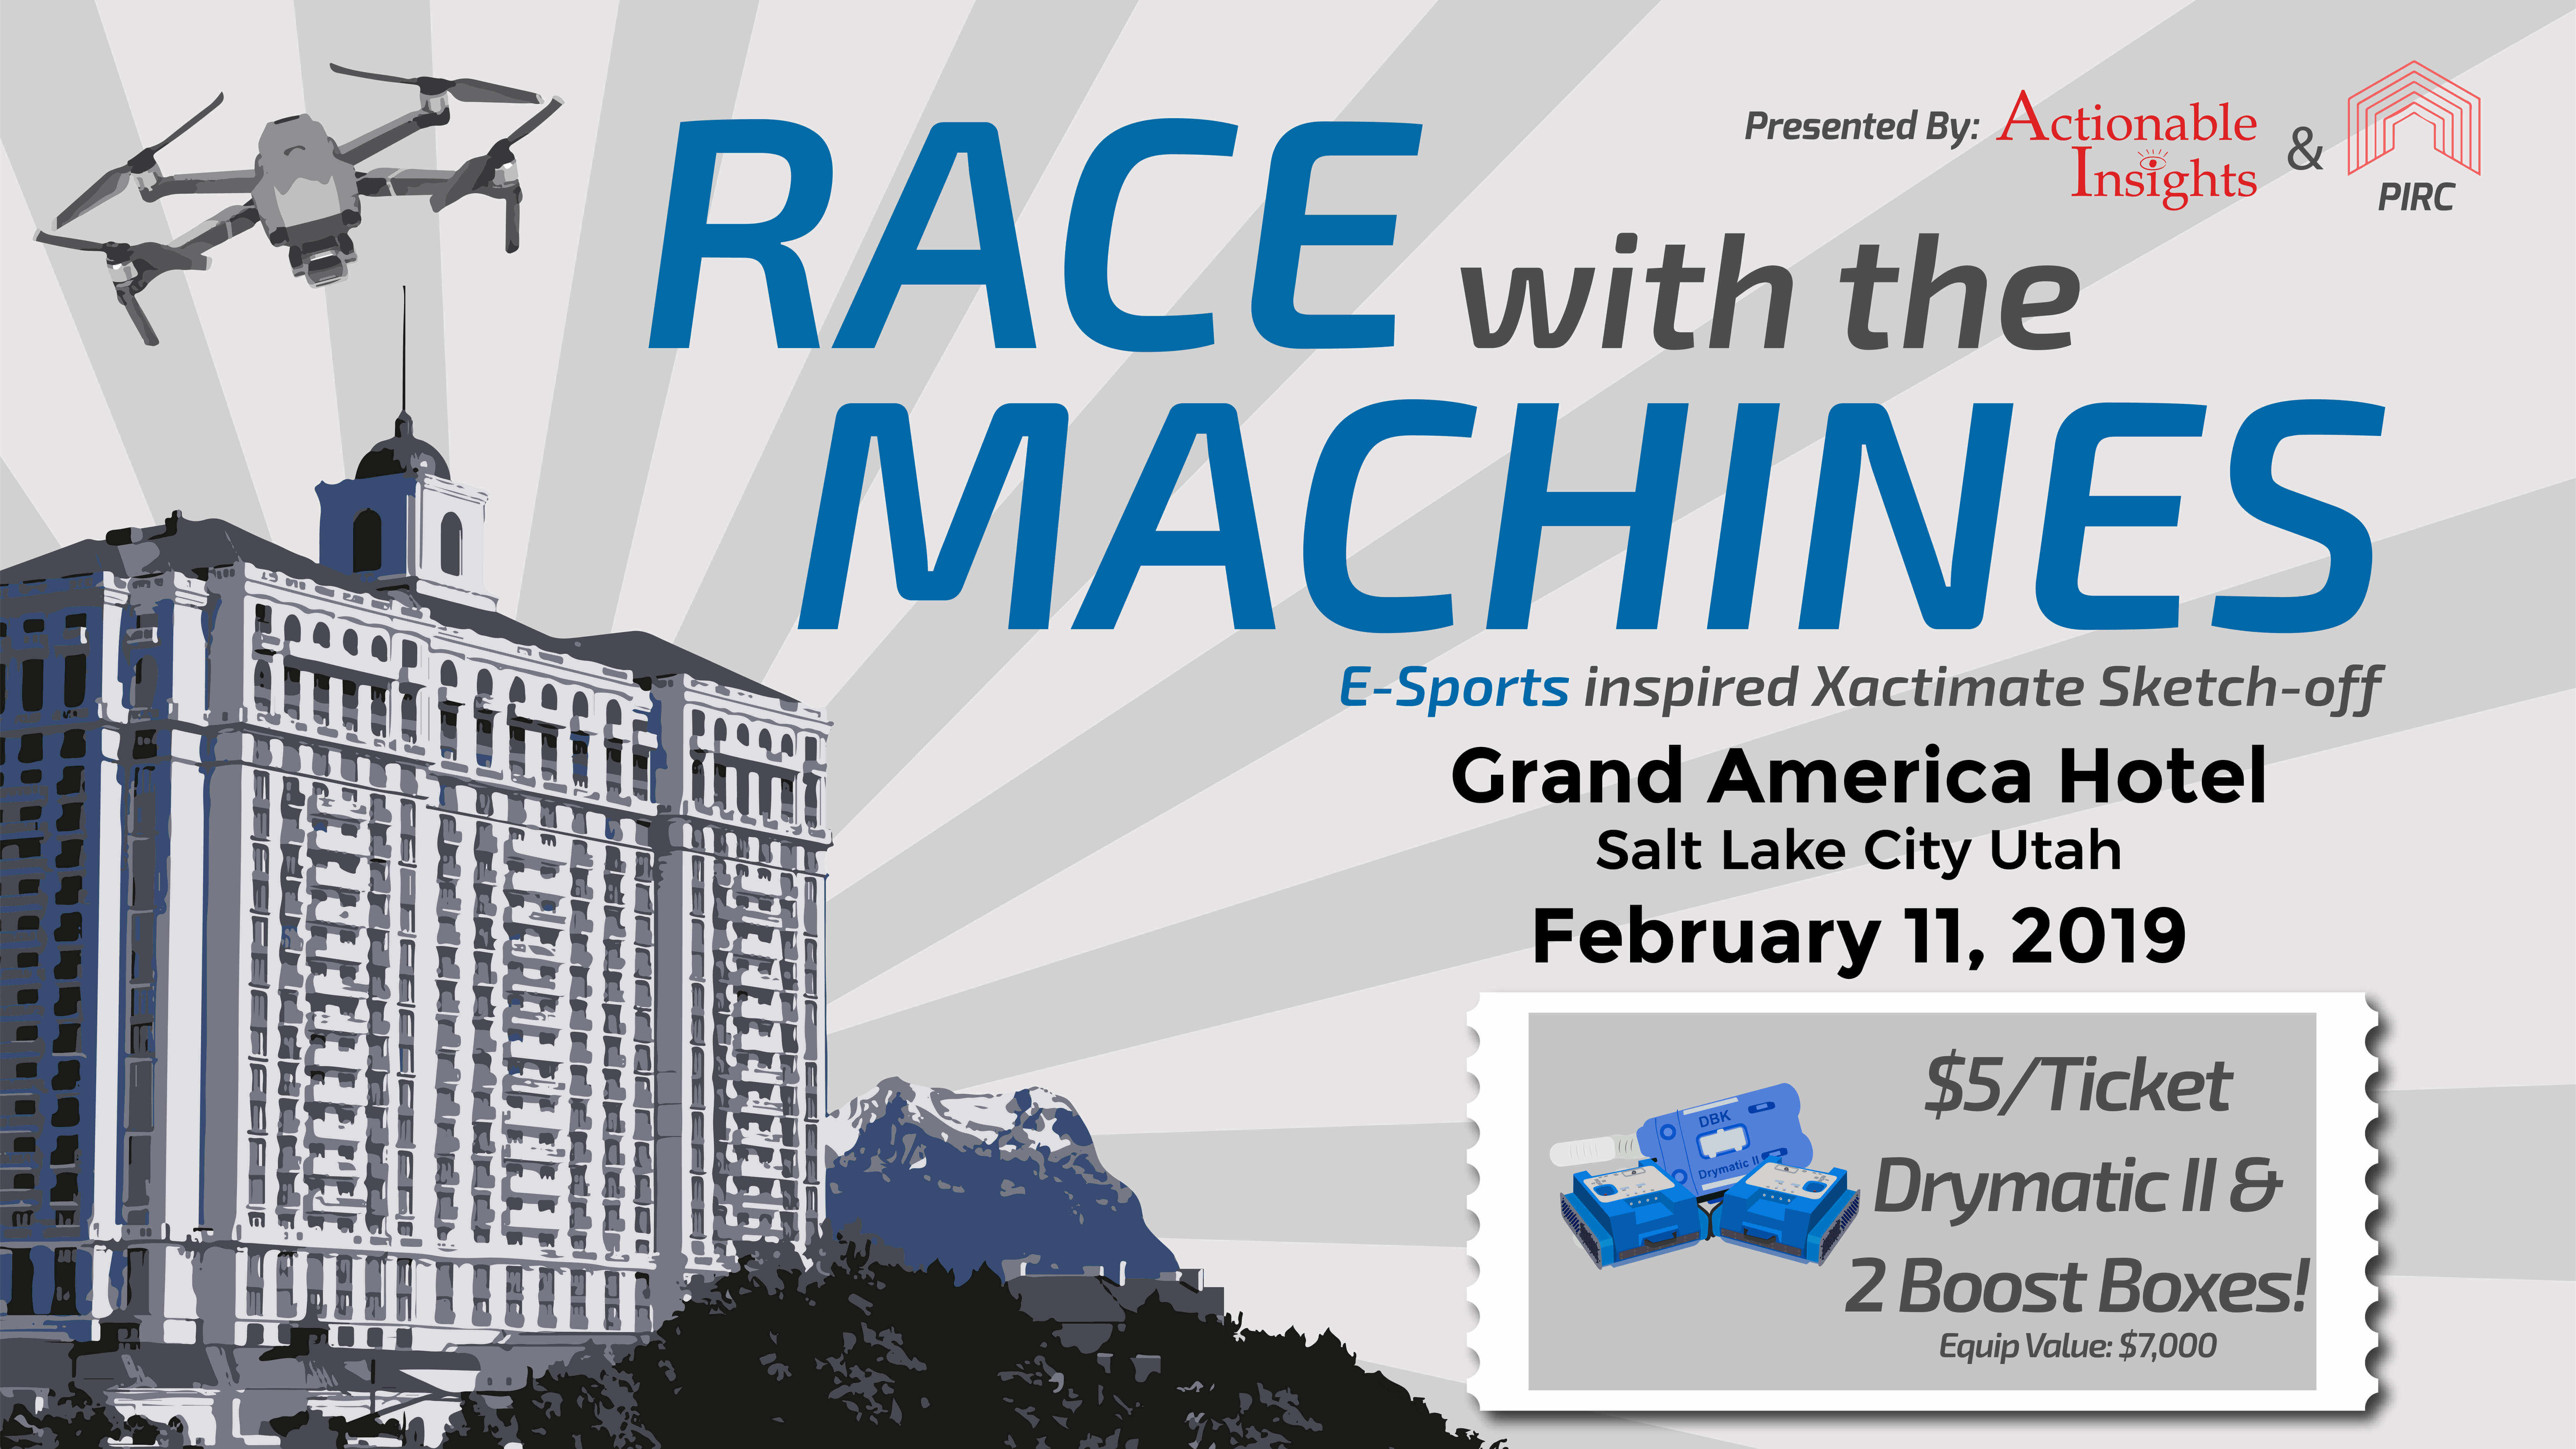 Race With The Machines - DBK Equipment Raffle Events - Actionable Insights